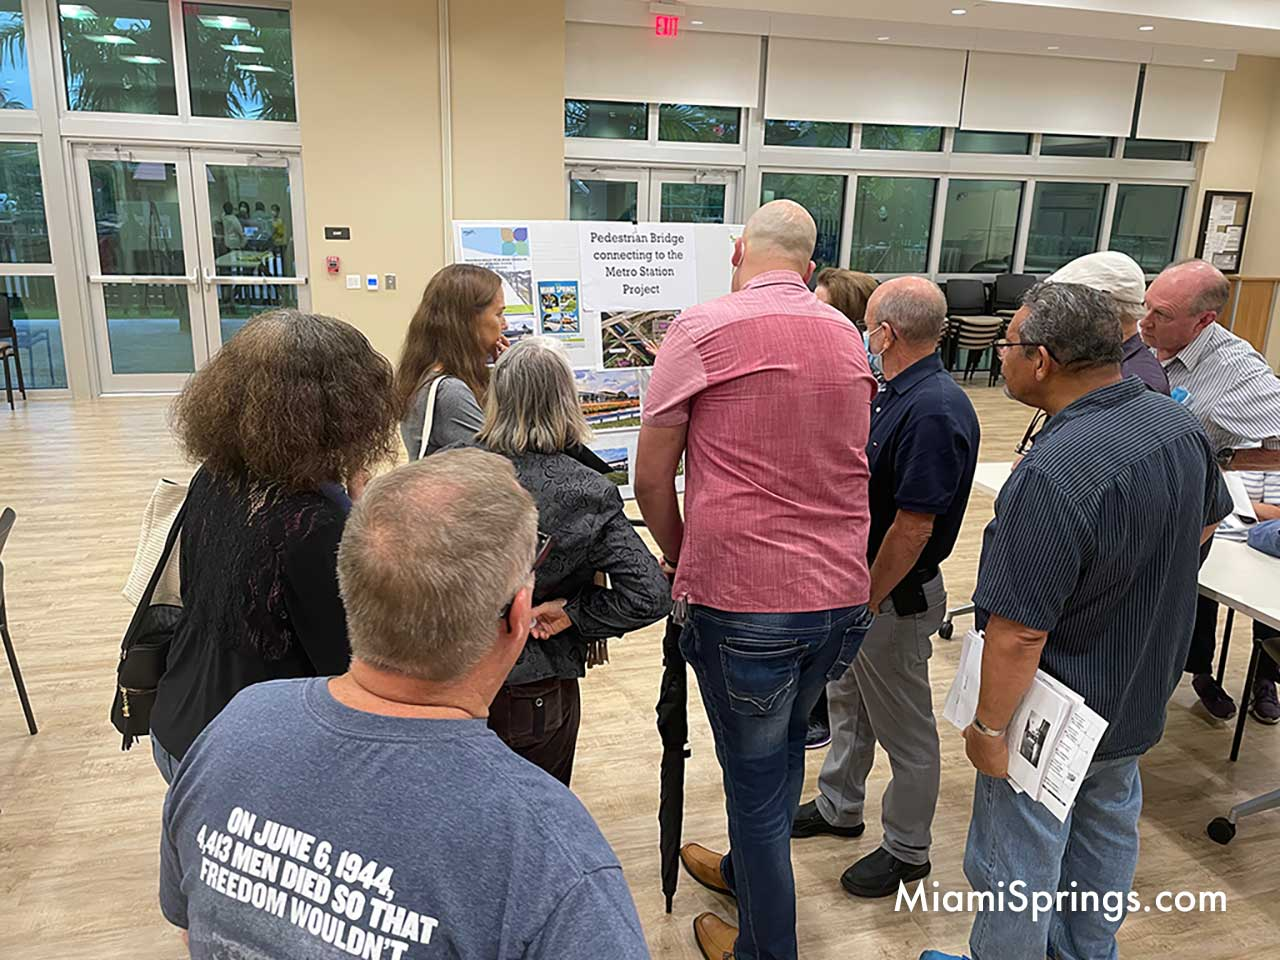 Residents expressed their concerns over adding a pedestrian bridge to the MetroRail.